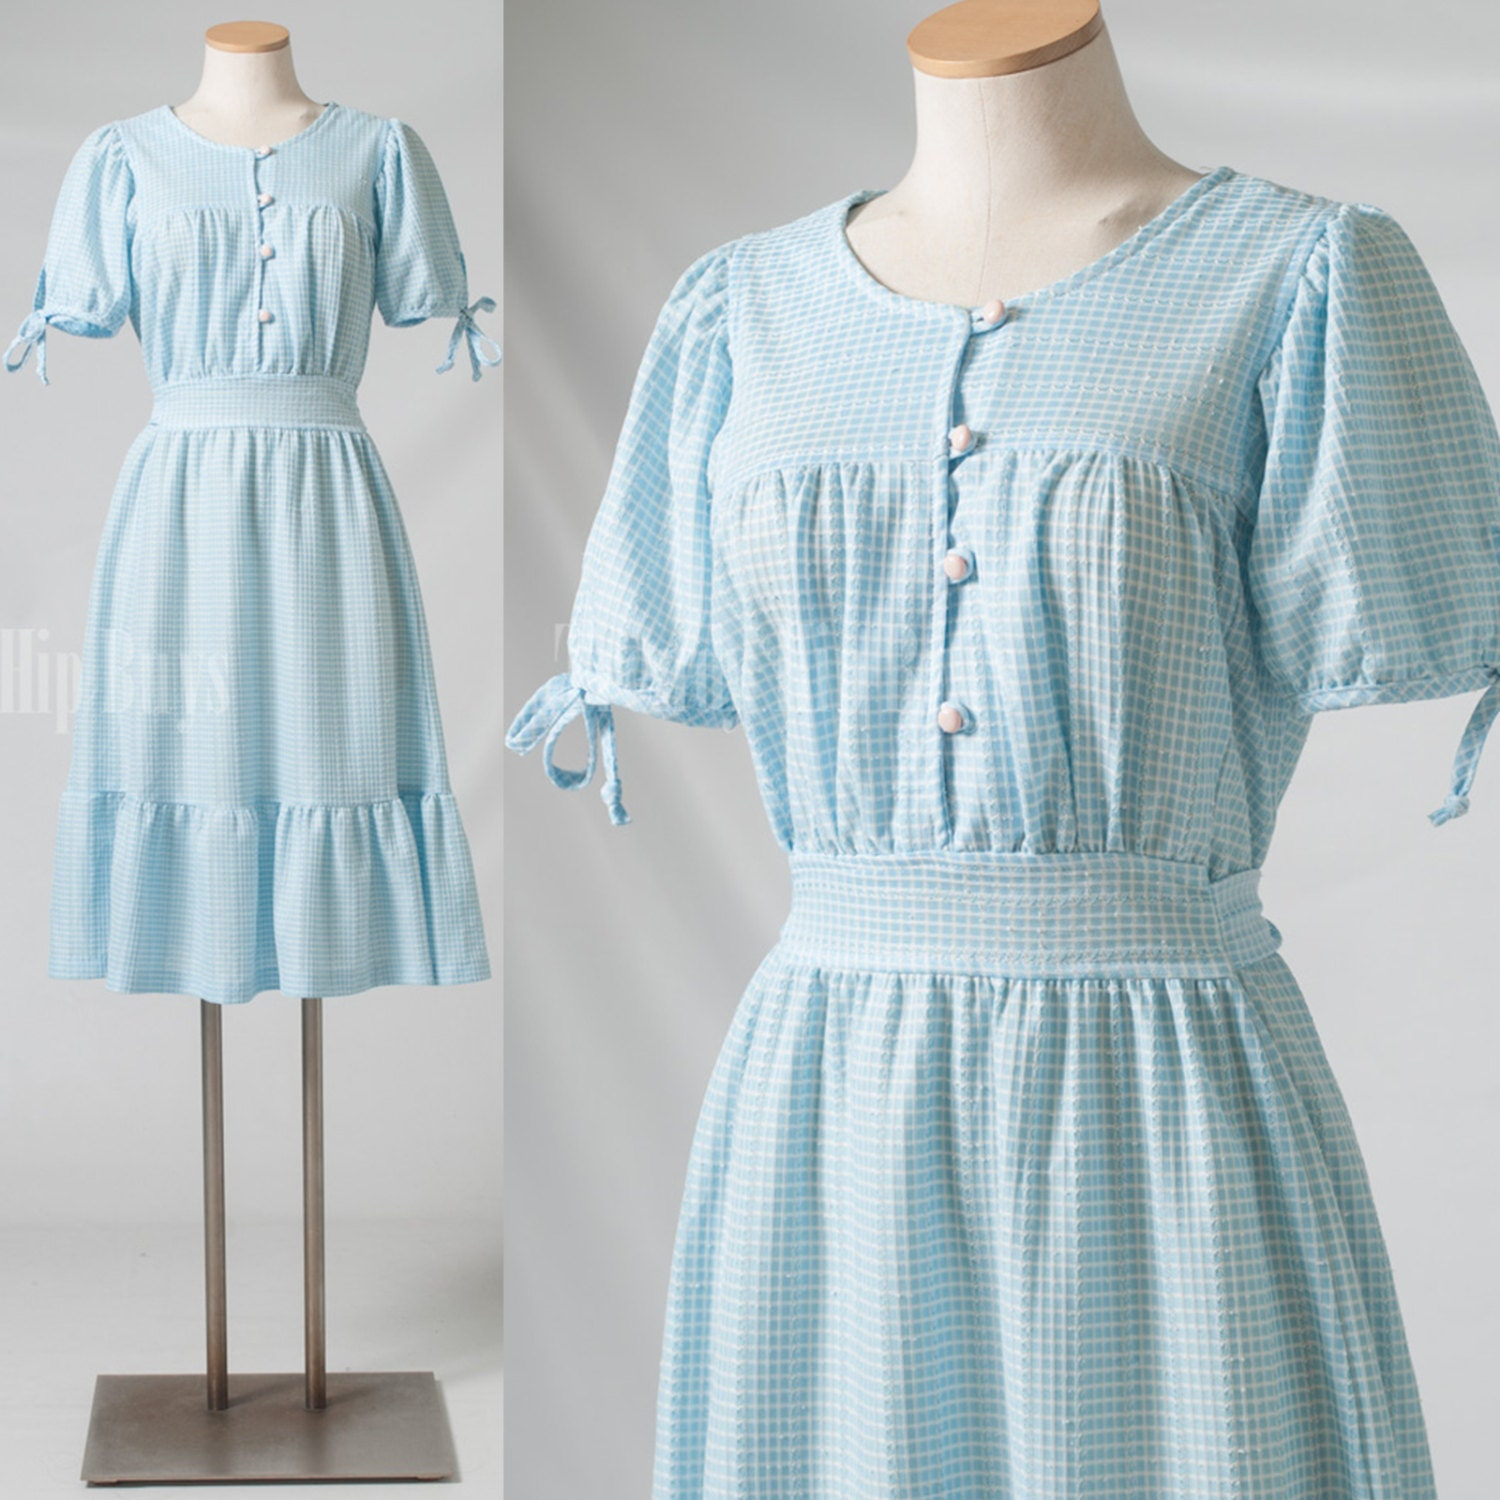 Vintage Dress 60s Dress Blue Dress Vintage Babydoll Dress